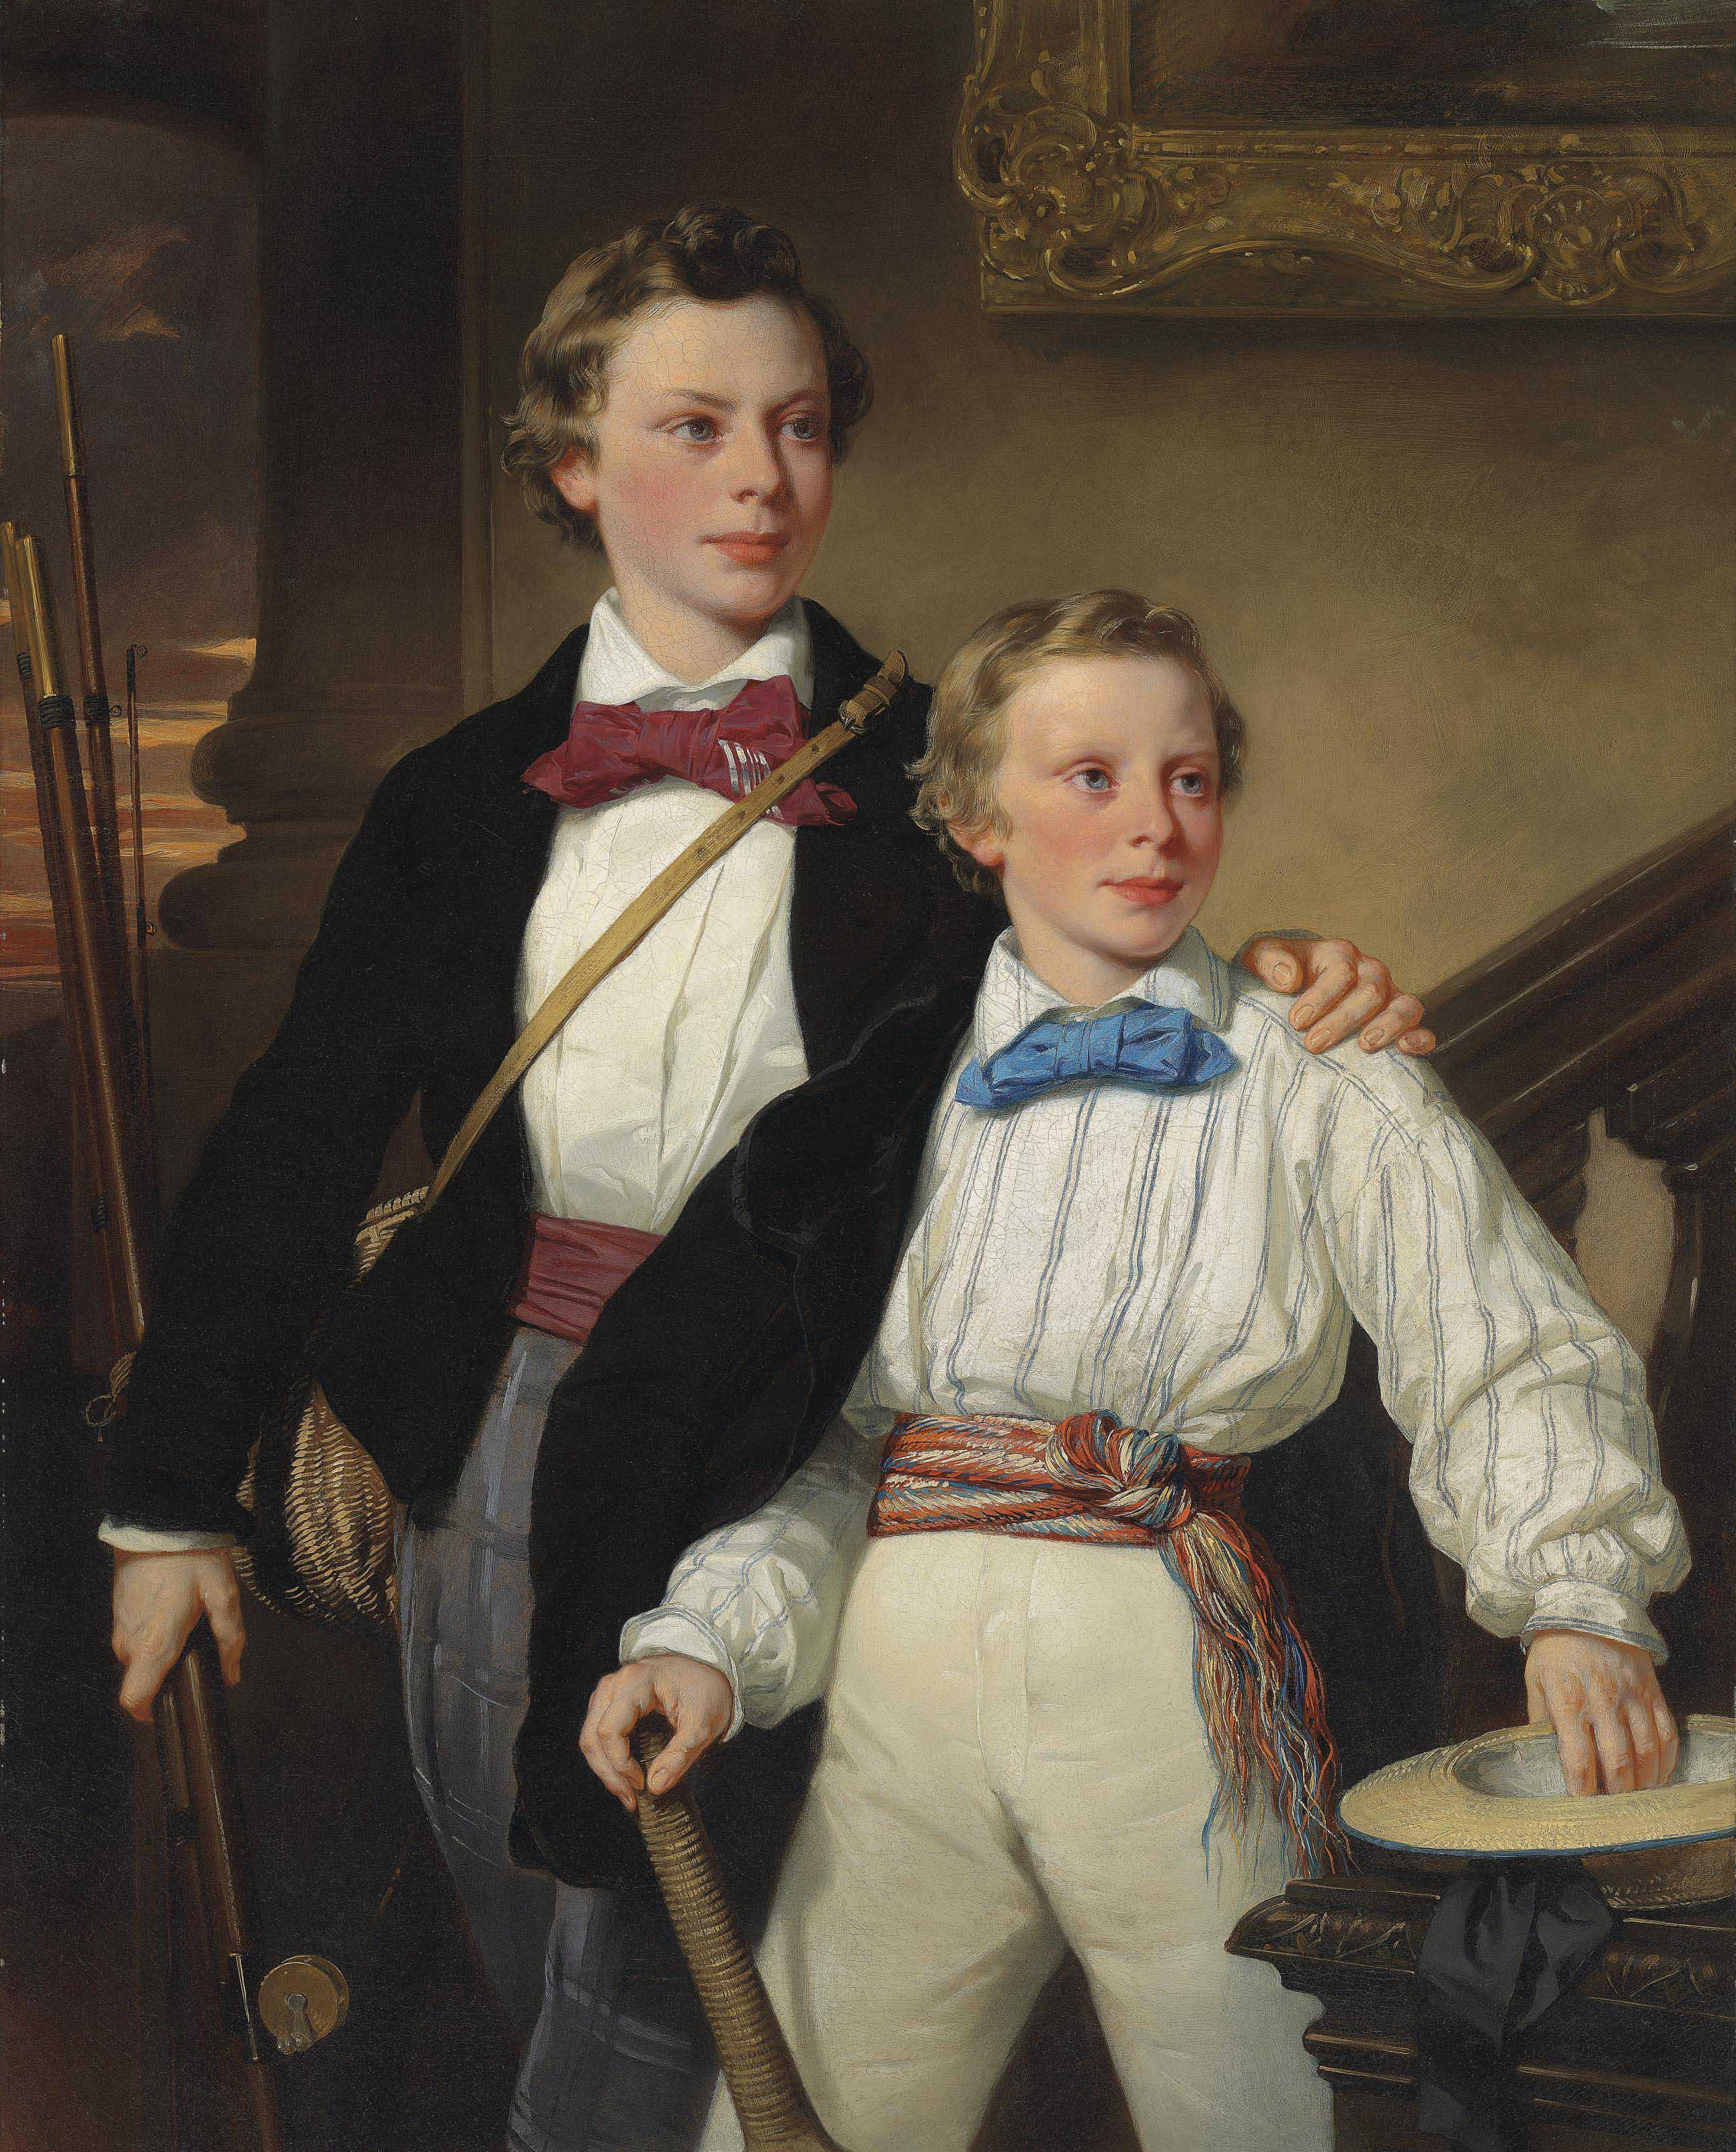 The Reluctant Scholars- Portraits of Mr. G. Barber's Sons